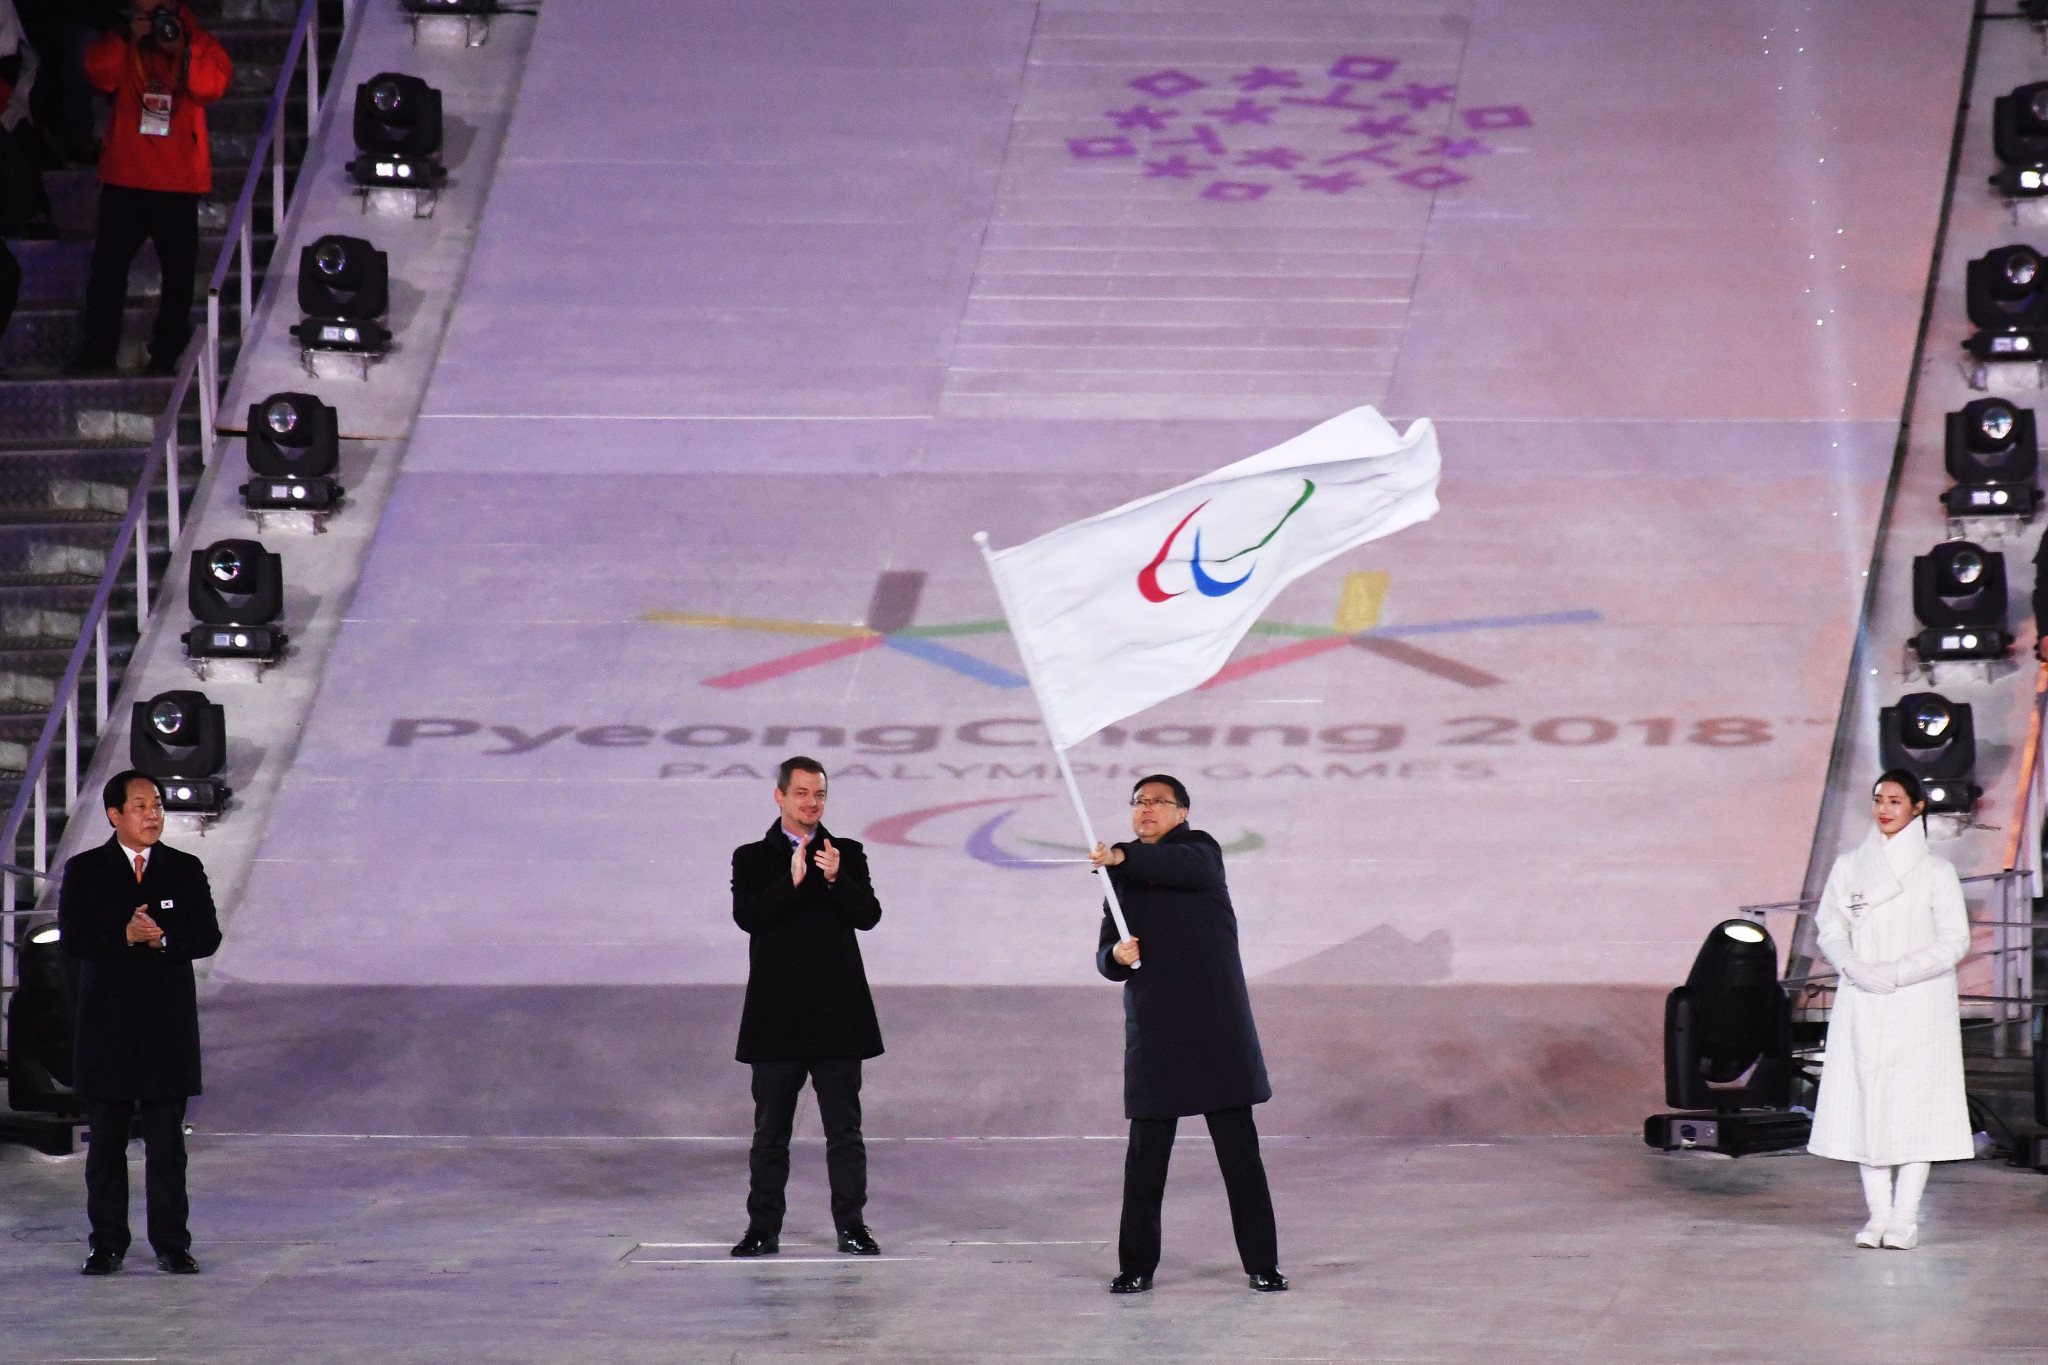 Mayor Chen Jining of Beijing waves the flag after receiving it from International Paralympic Committee President Andrew Parsons at the Closing Ceremony of Pyeongchang 2018 ©Getty Images